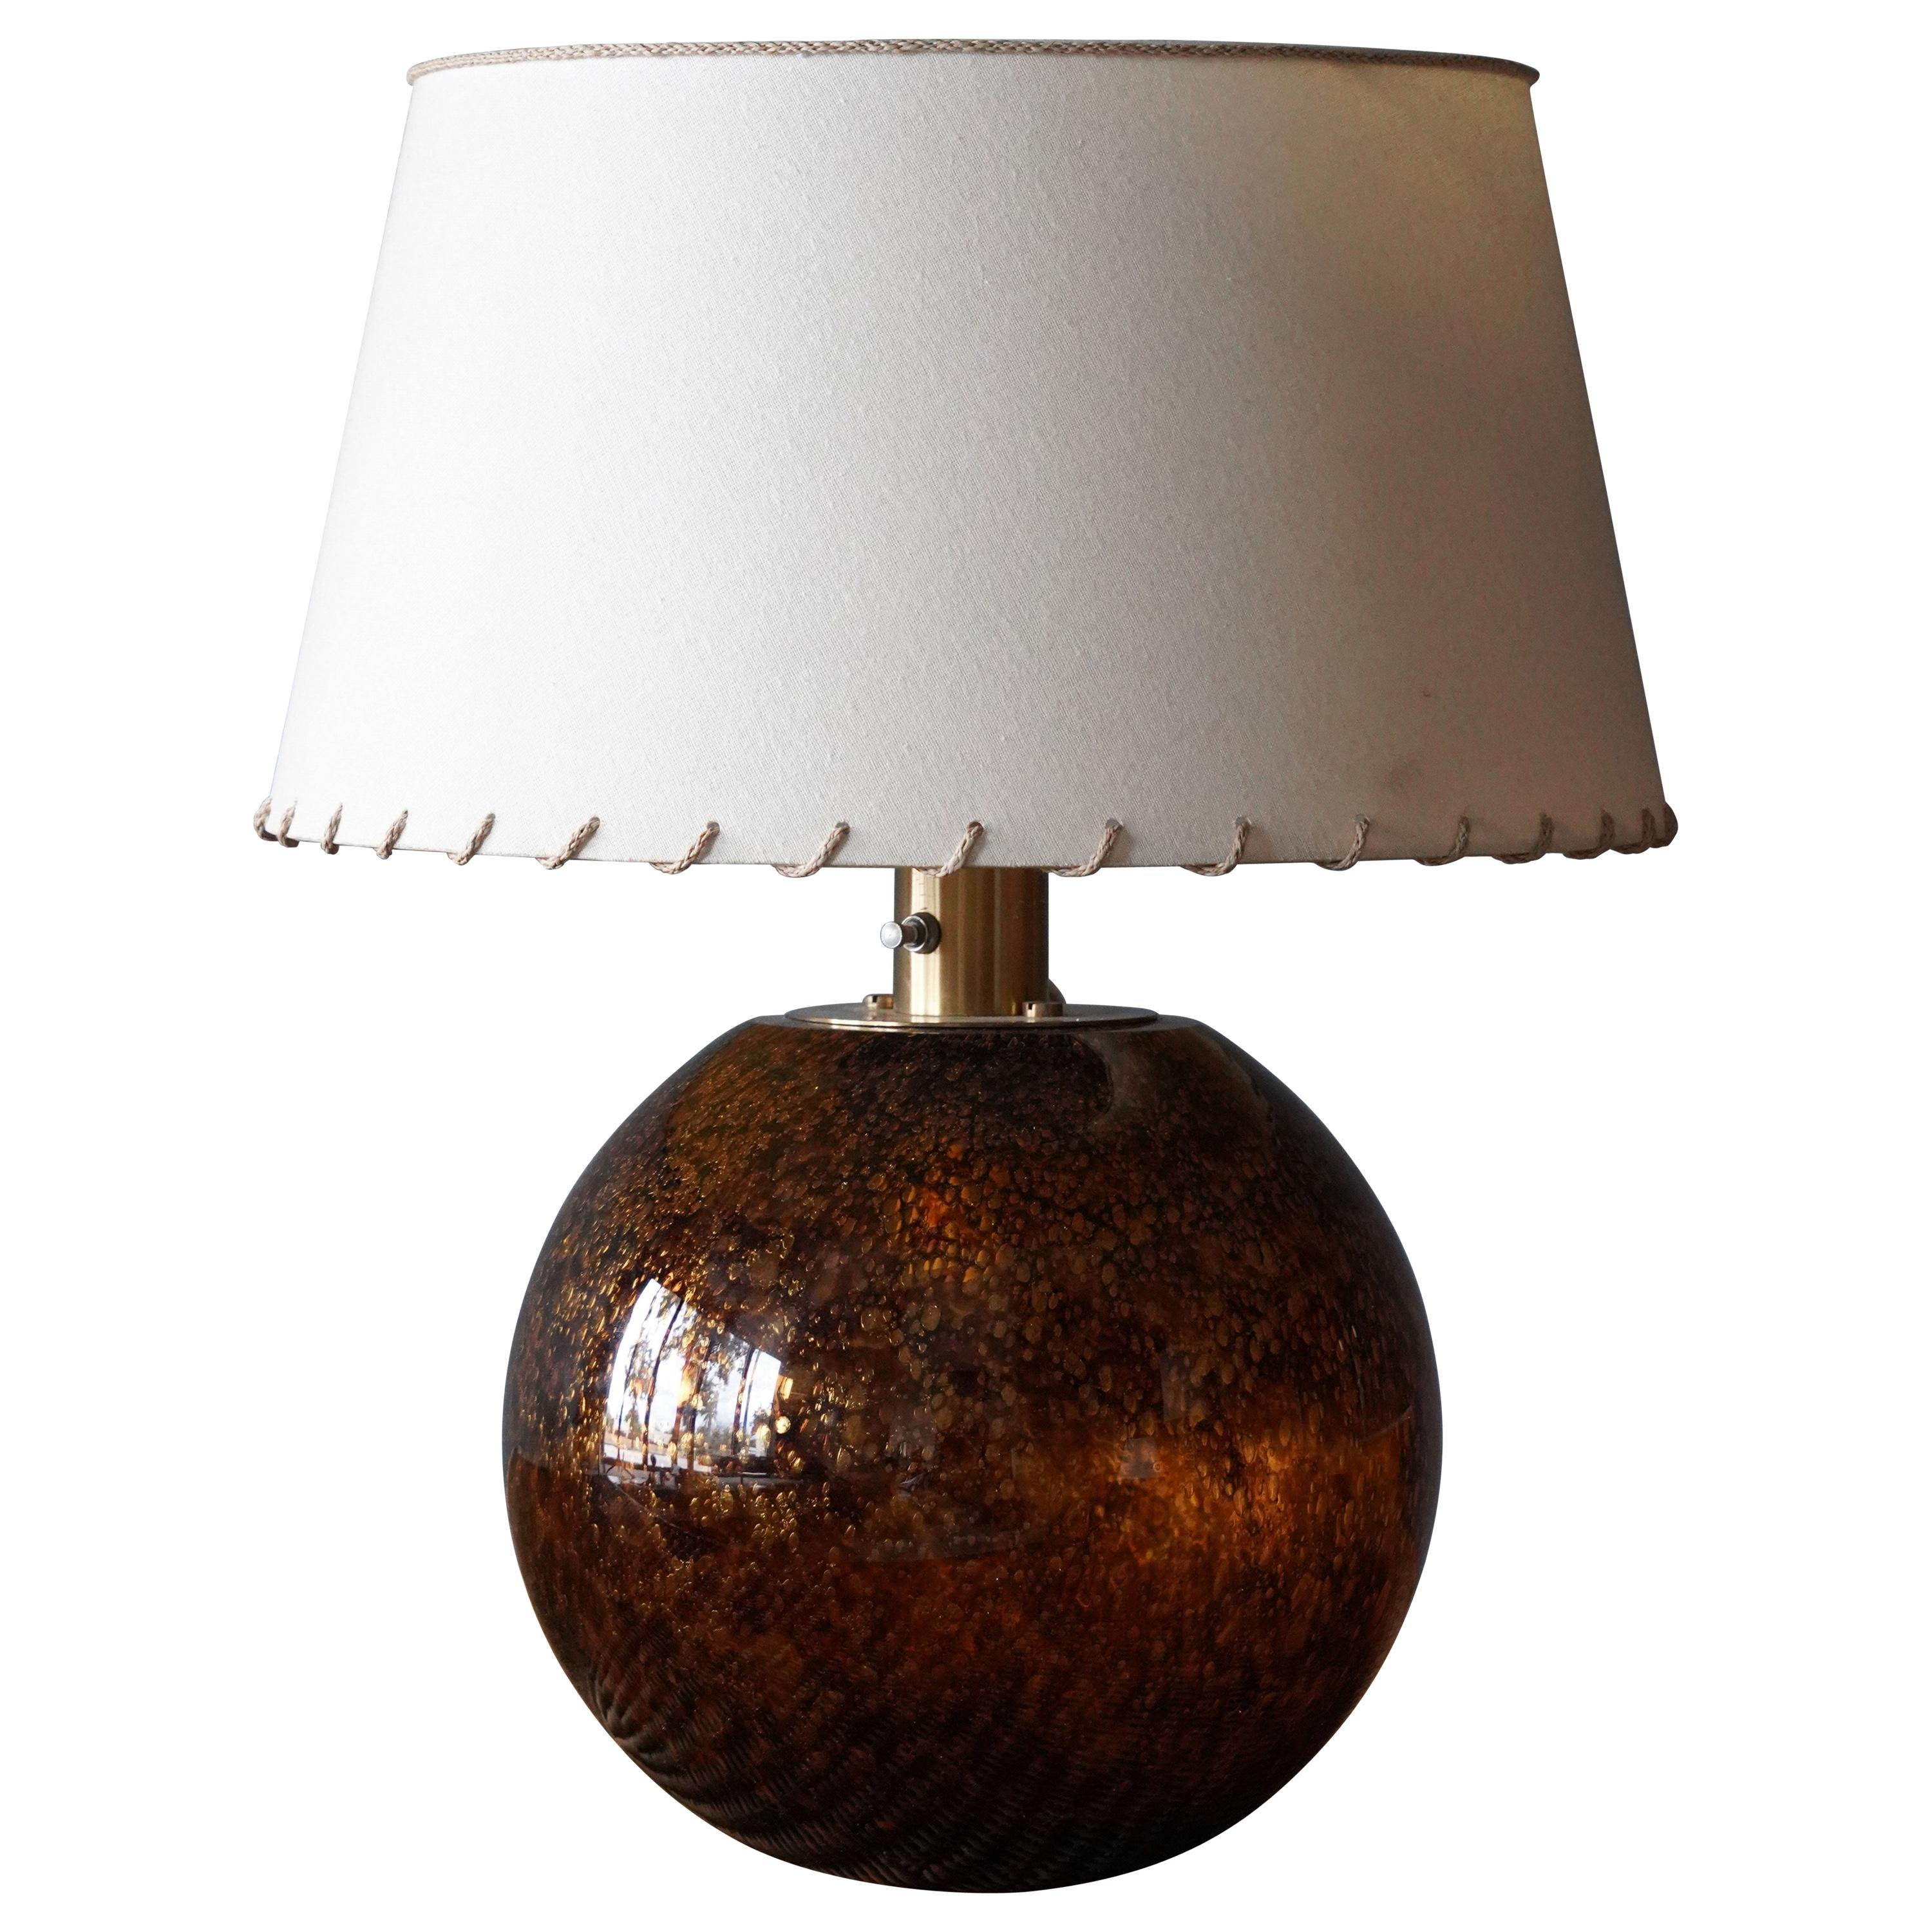 Casey Fantin, Large Table Lamp, Glass, Brass, Italy, 1960s